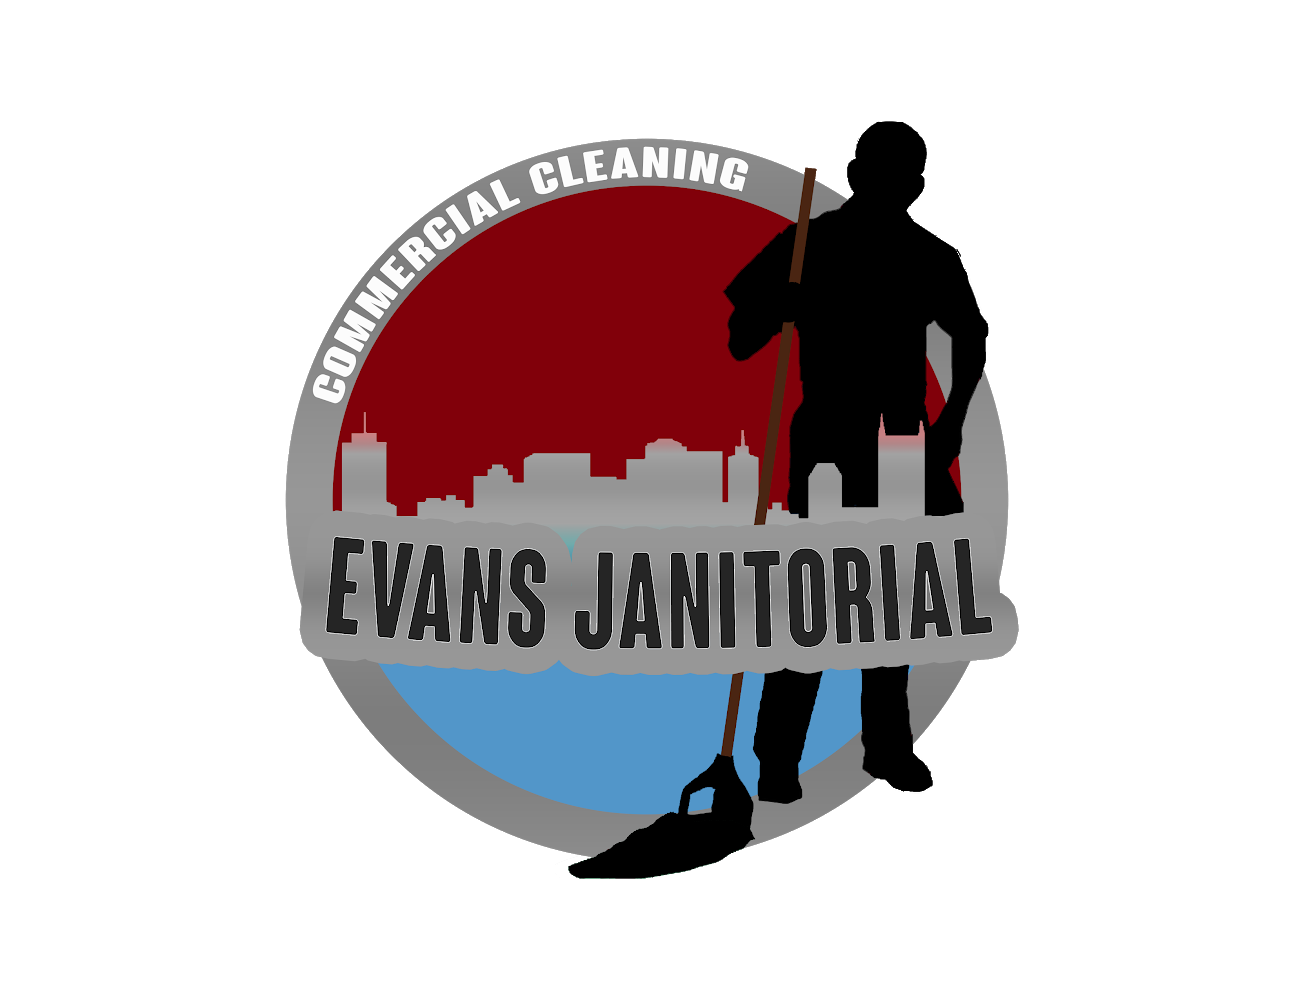 evans janitorial